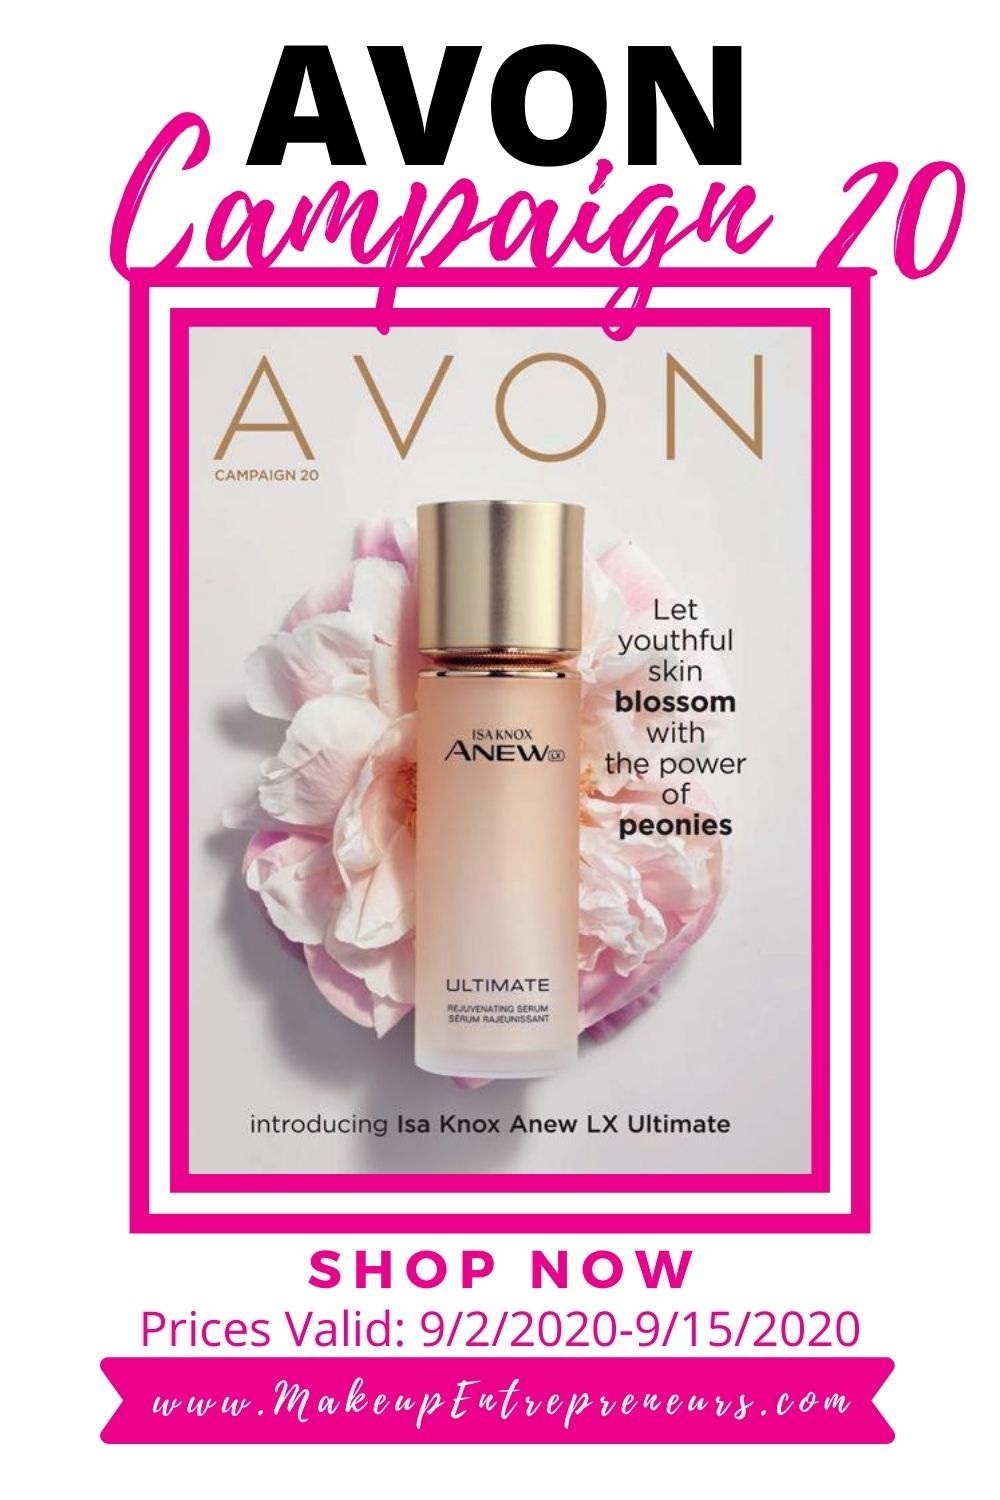 Avon Campaign 20 2020 Introduces the Anew Collection Isa Knox Ultimate LX